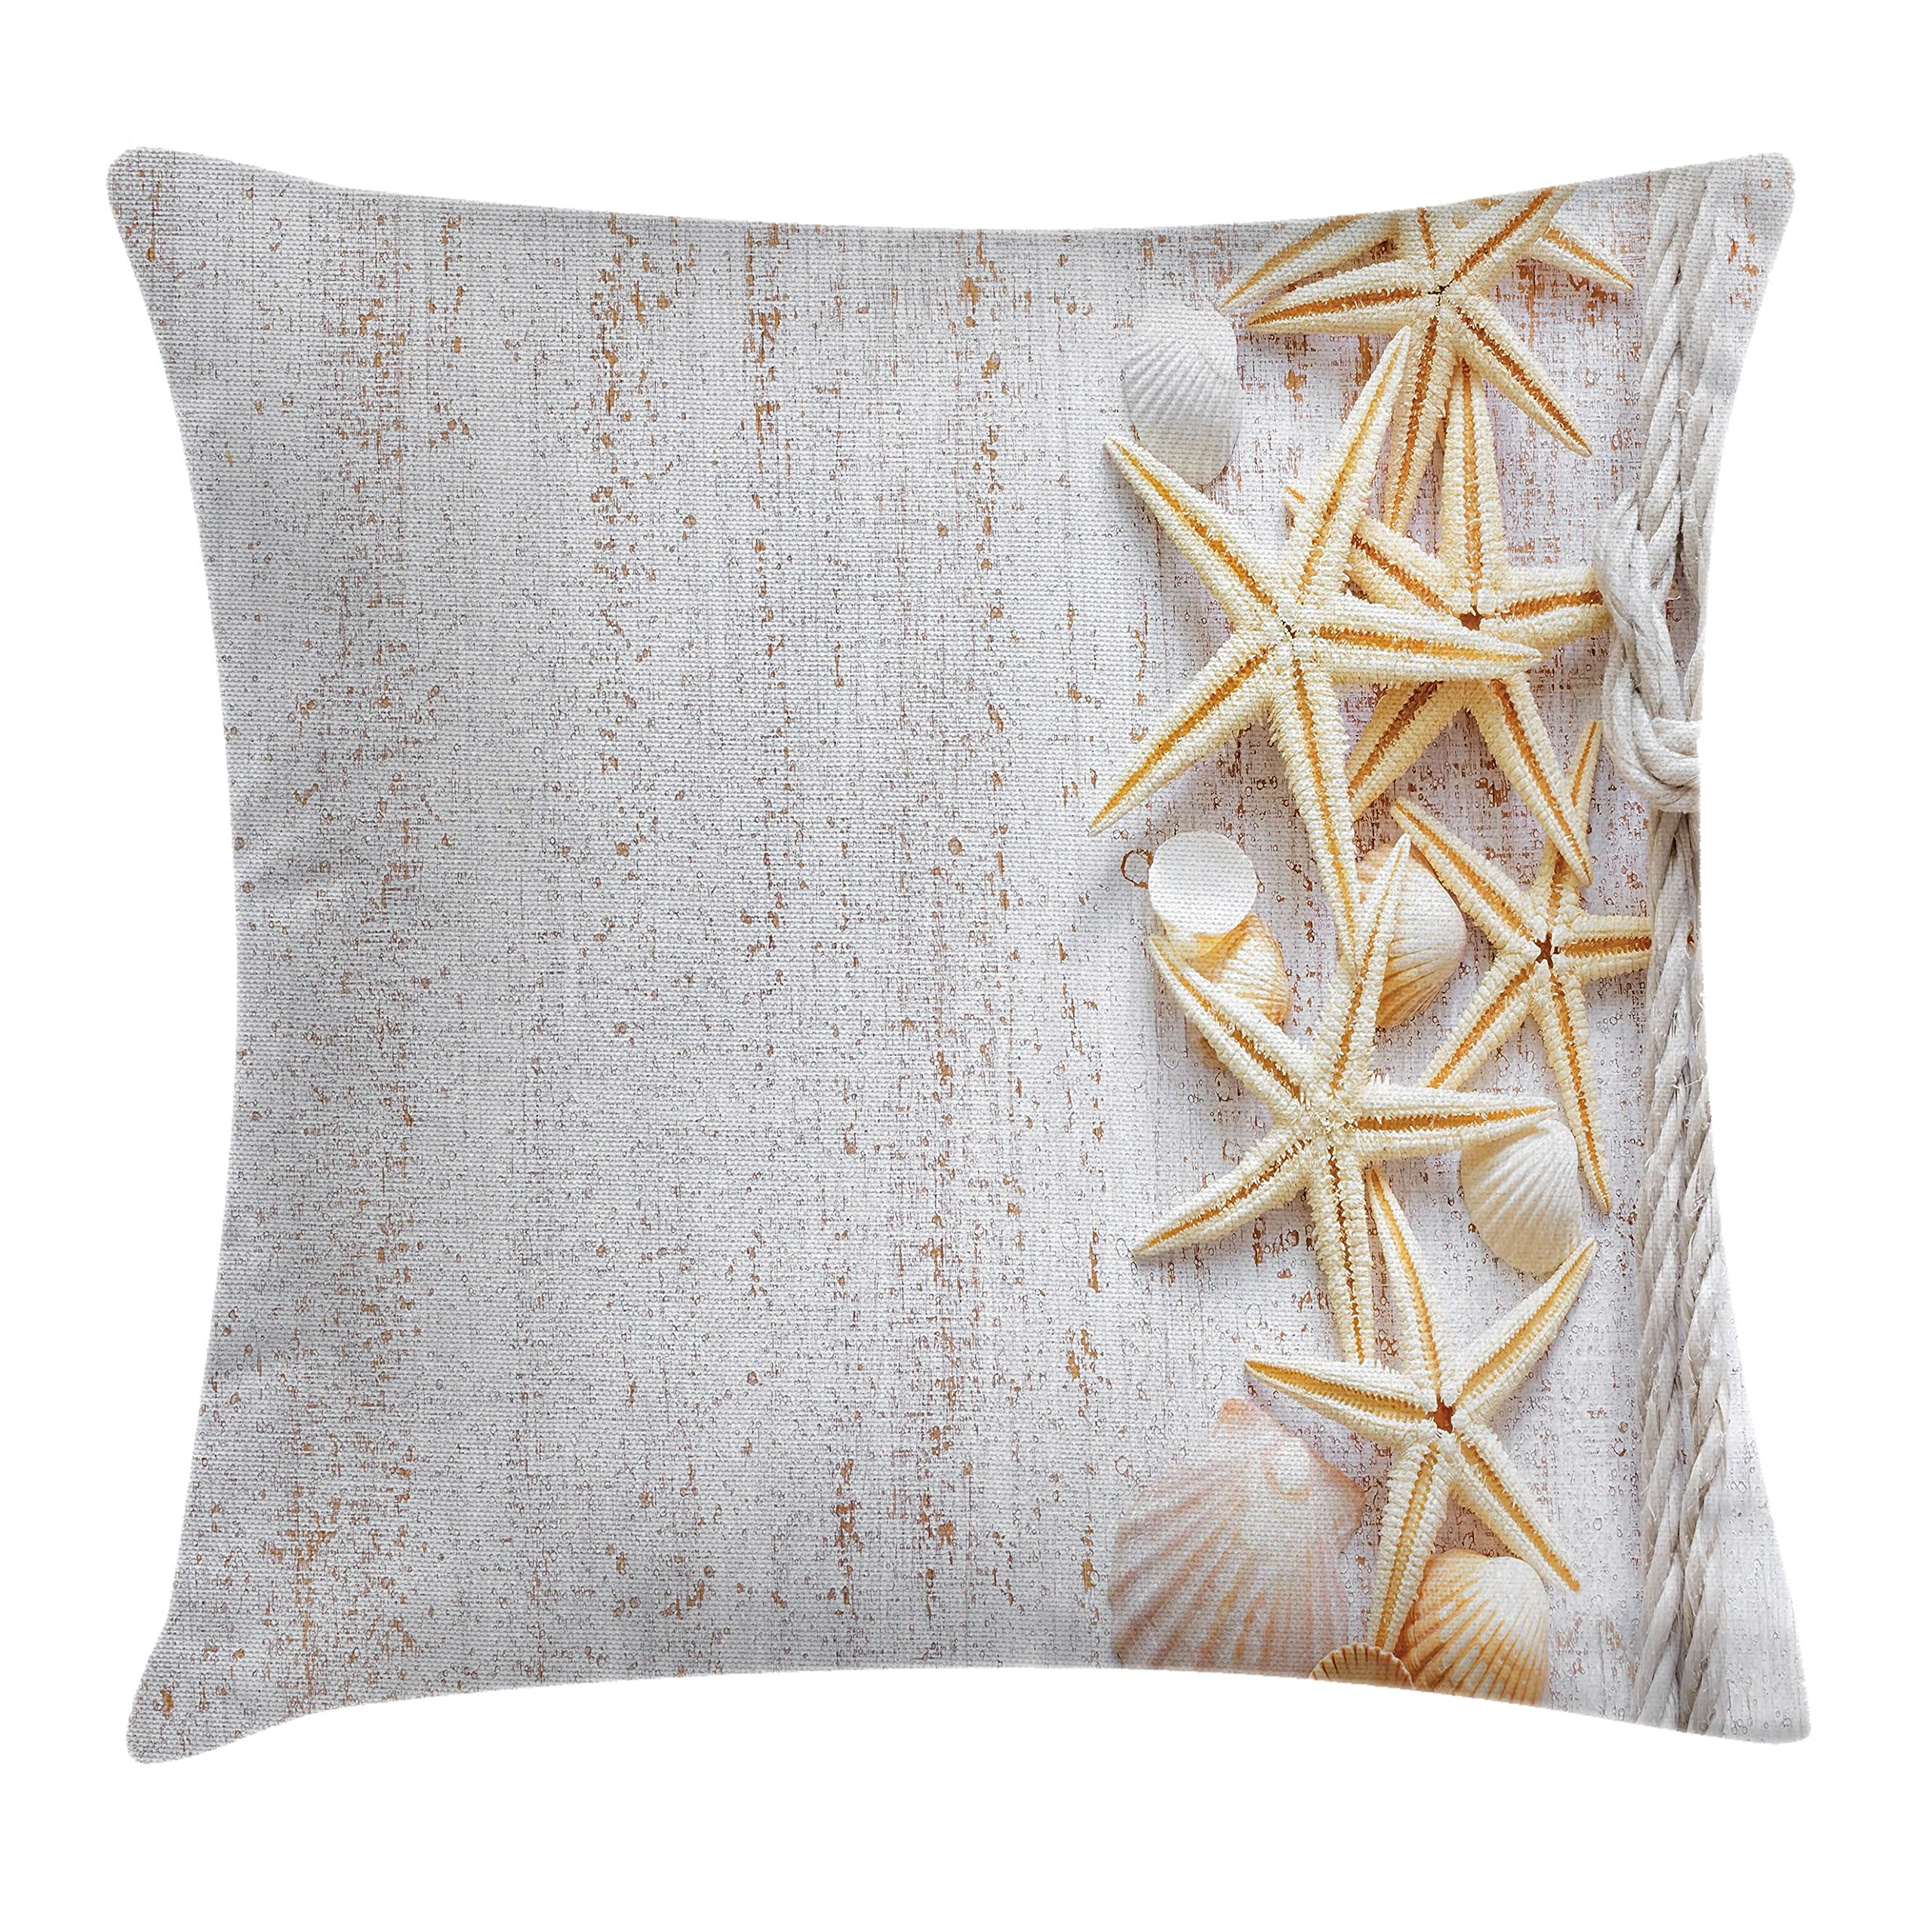 Ambesonne Seashells Throw Pillow Cushion Cover, Seashells and Starfish with Navy Rope in Vertical Direction Wood Surface Ocean Beach, Decorative Square Accent Pillow Case, 16 X 16 Inches, Ivory